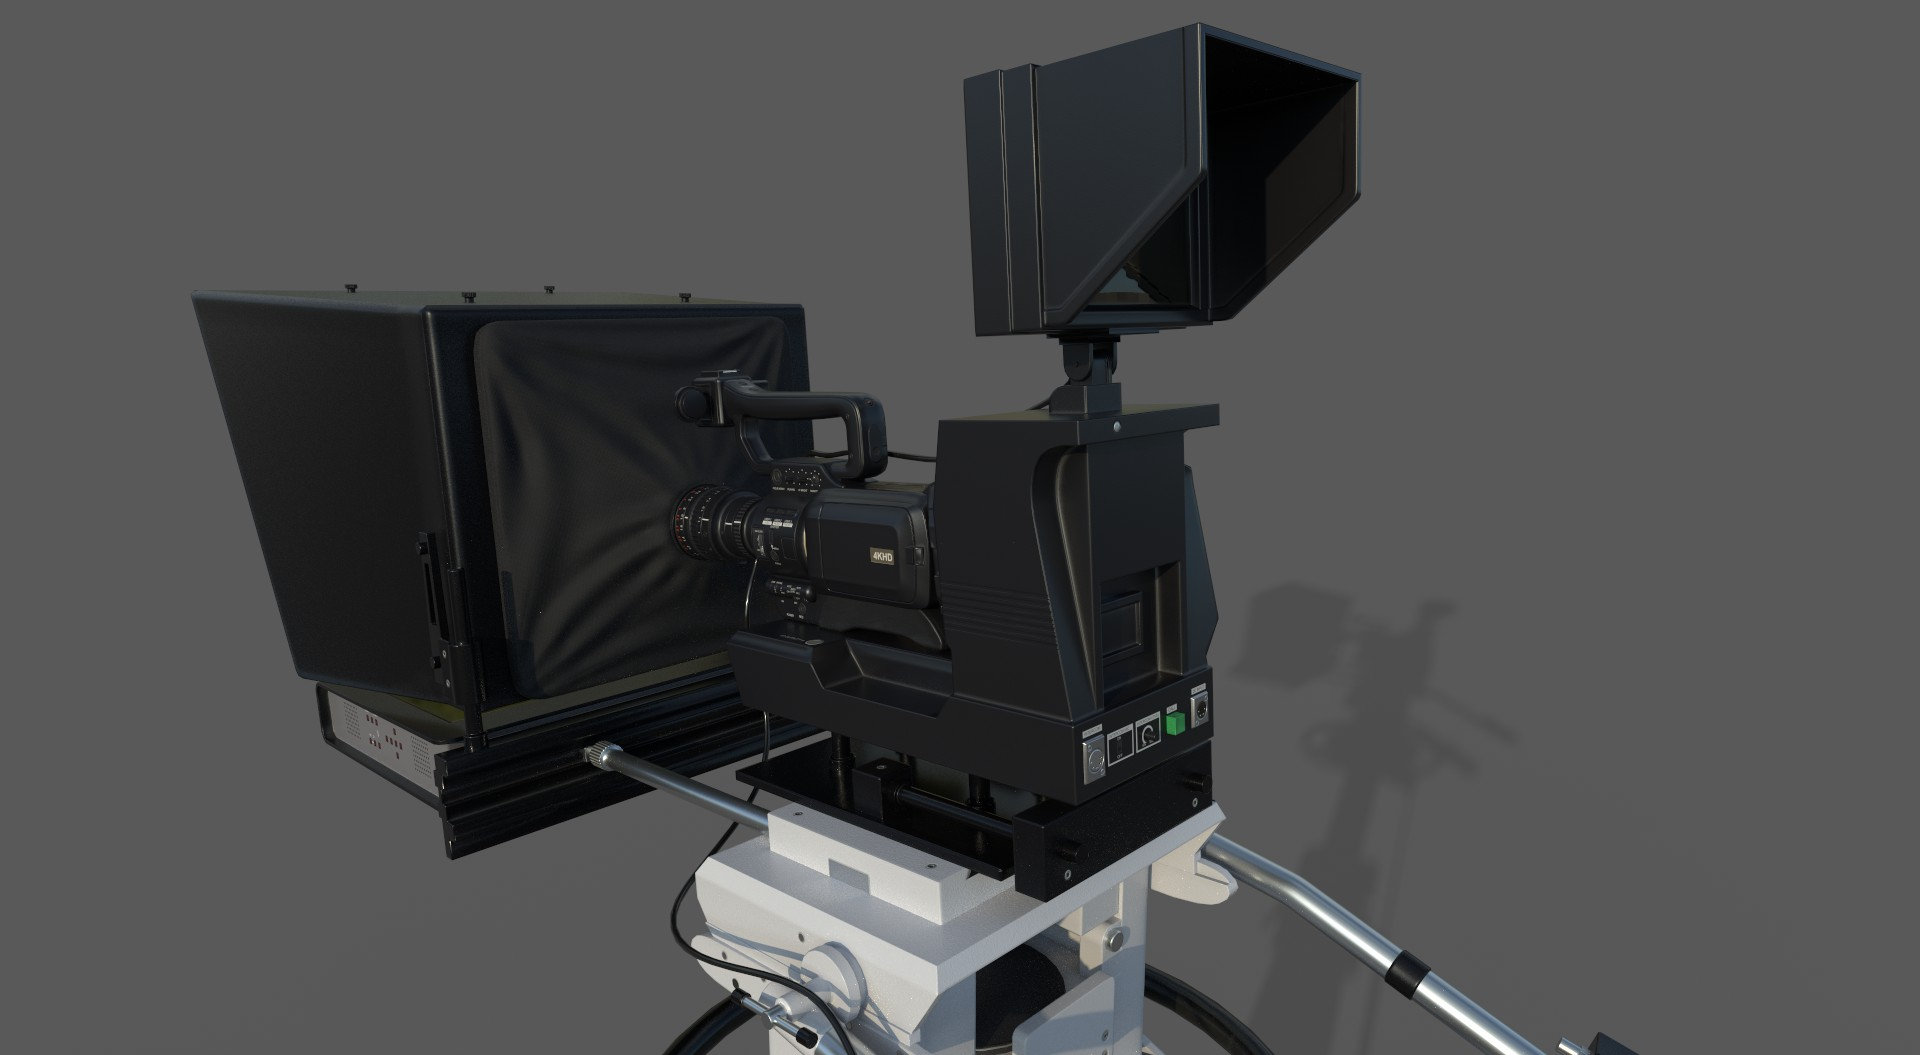 NewsroomCamera_12.jpg